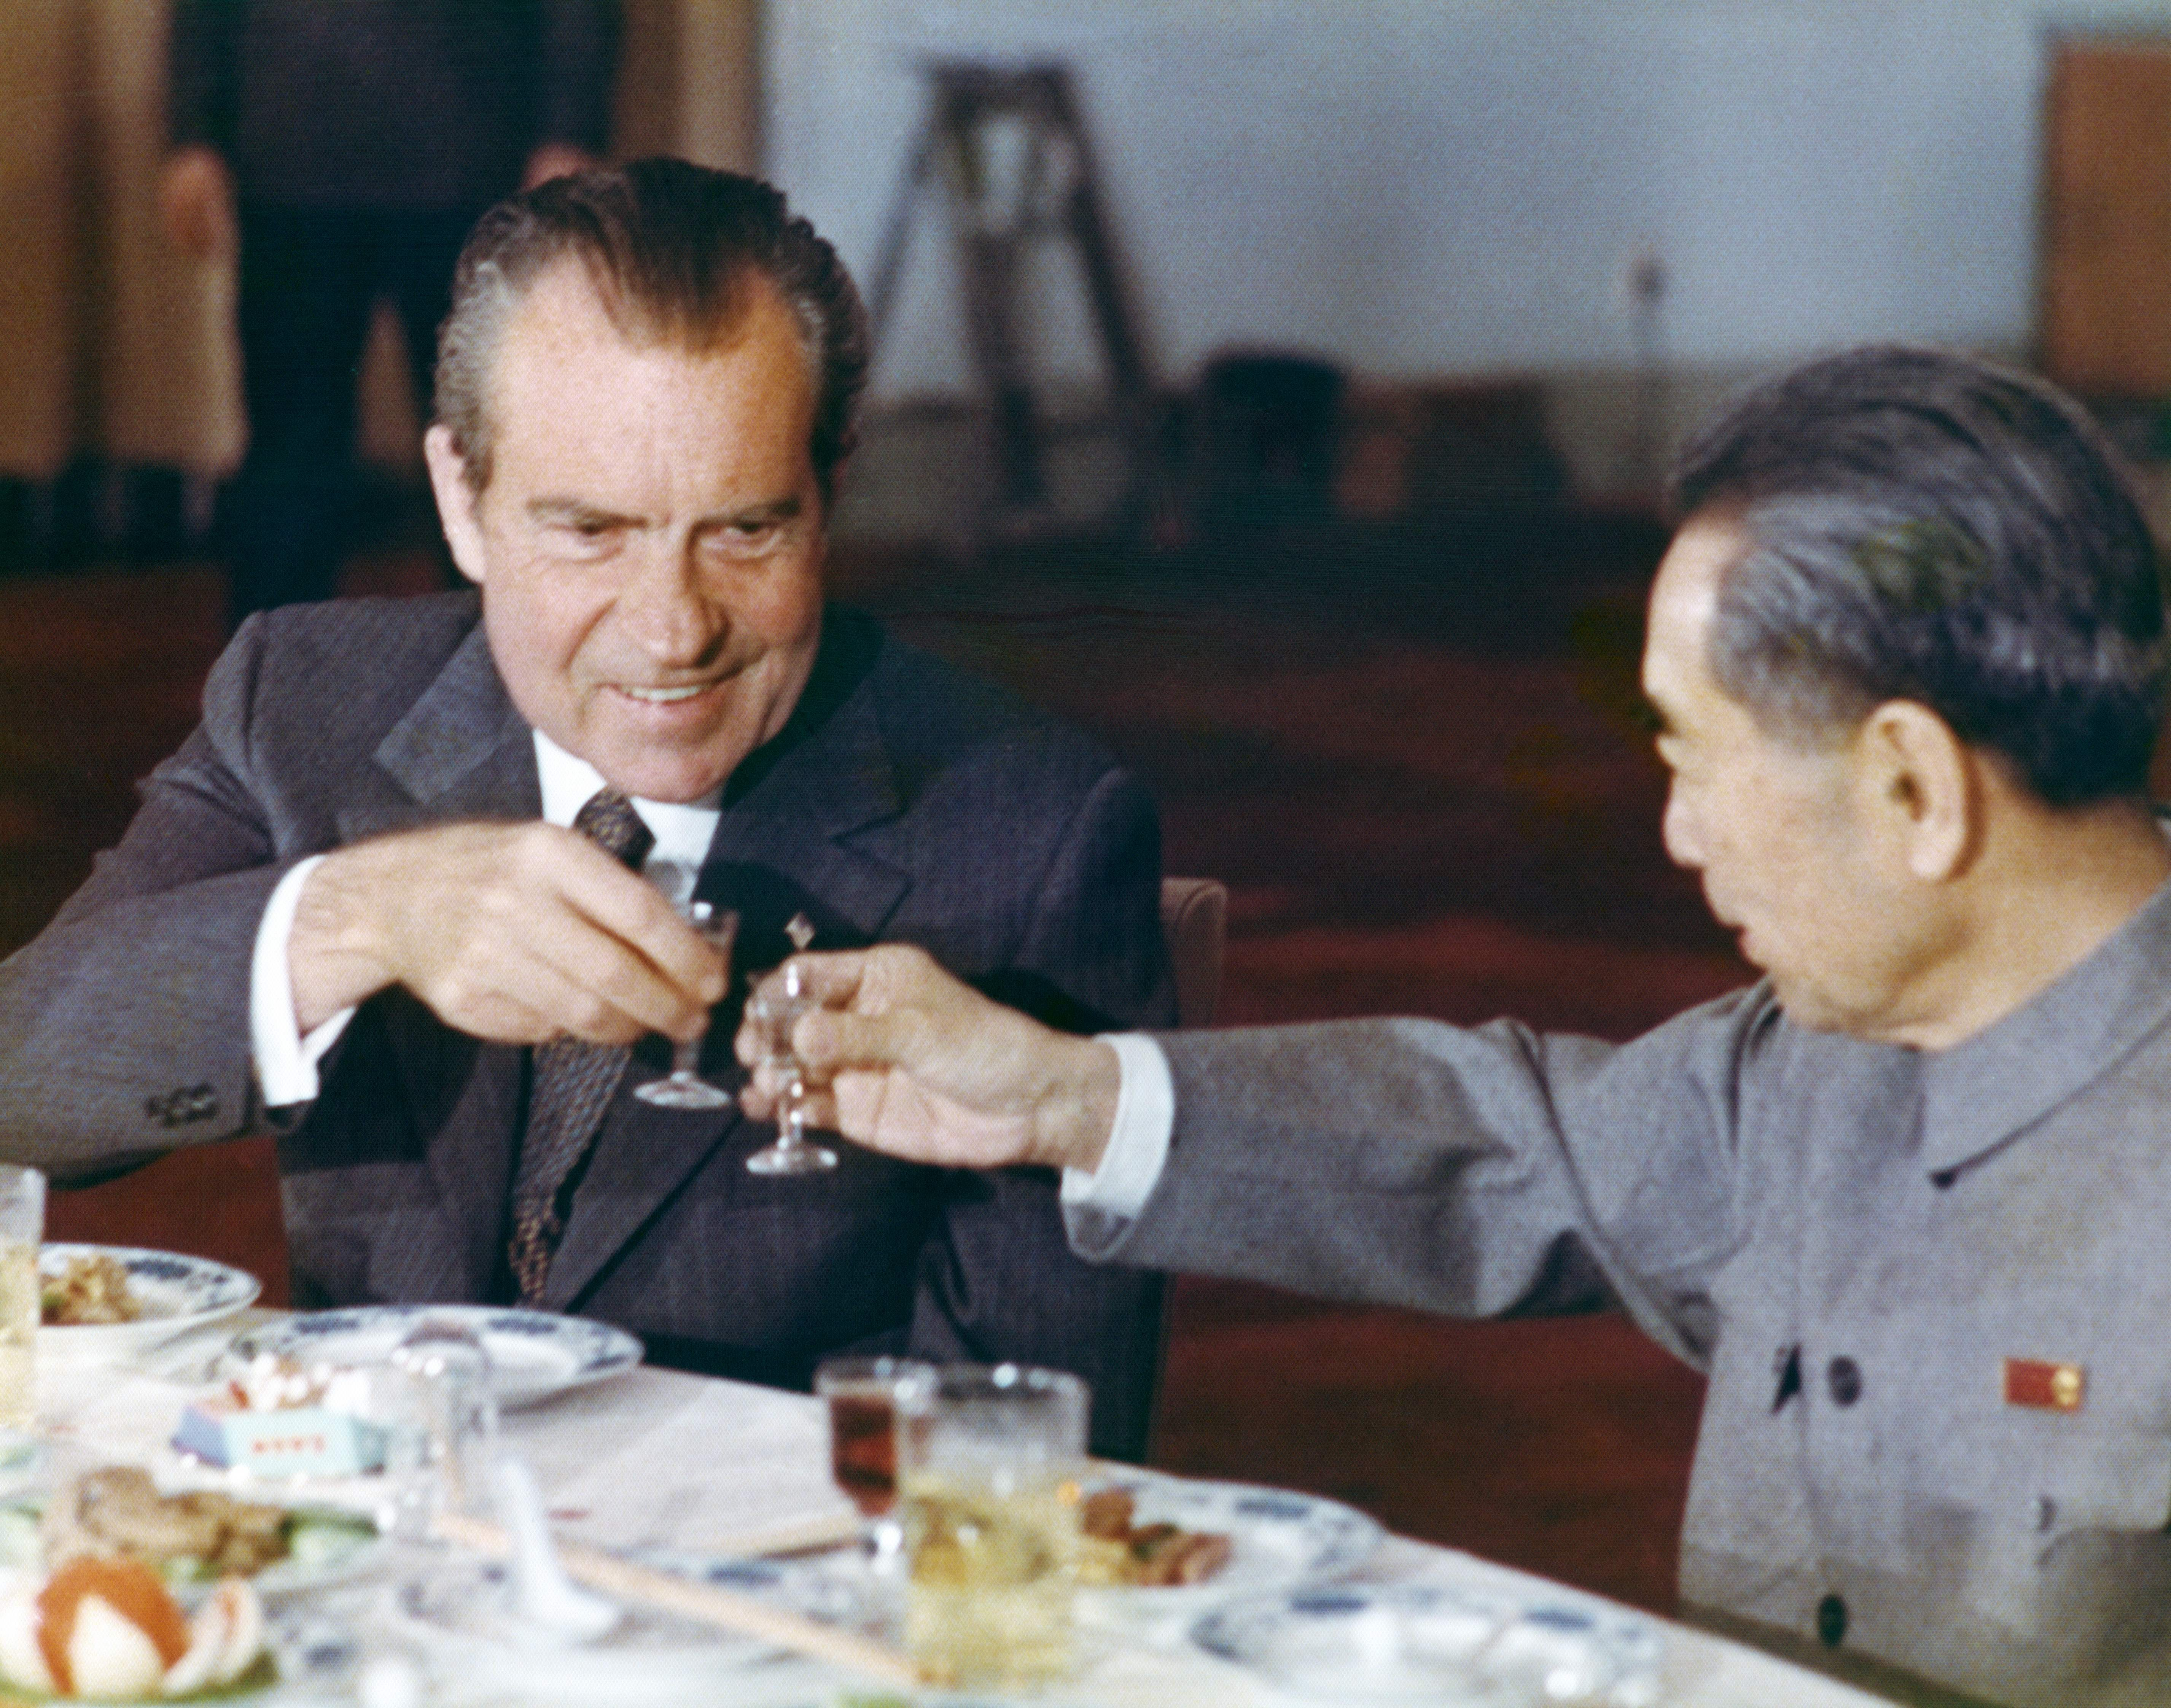 President Richard Nixon toasts with Chinese Prime minister Zhou Enlai during a banquet in Beijing on February, 1972 during an official visit in China.